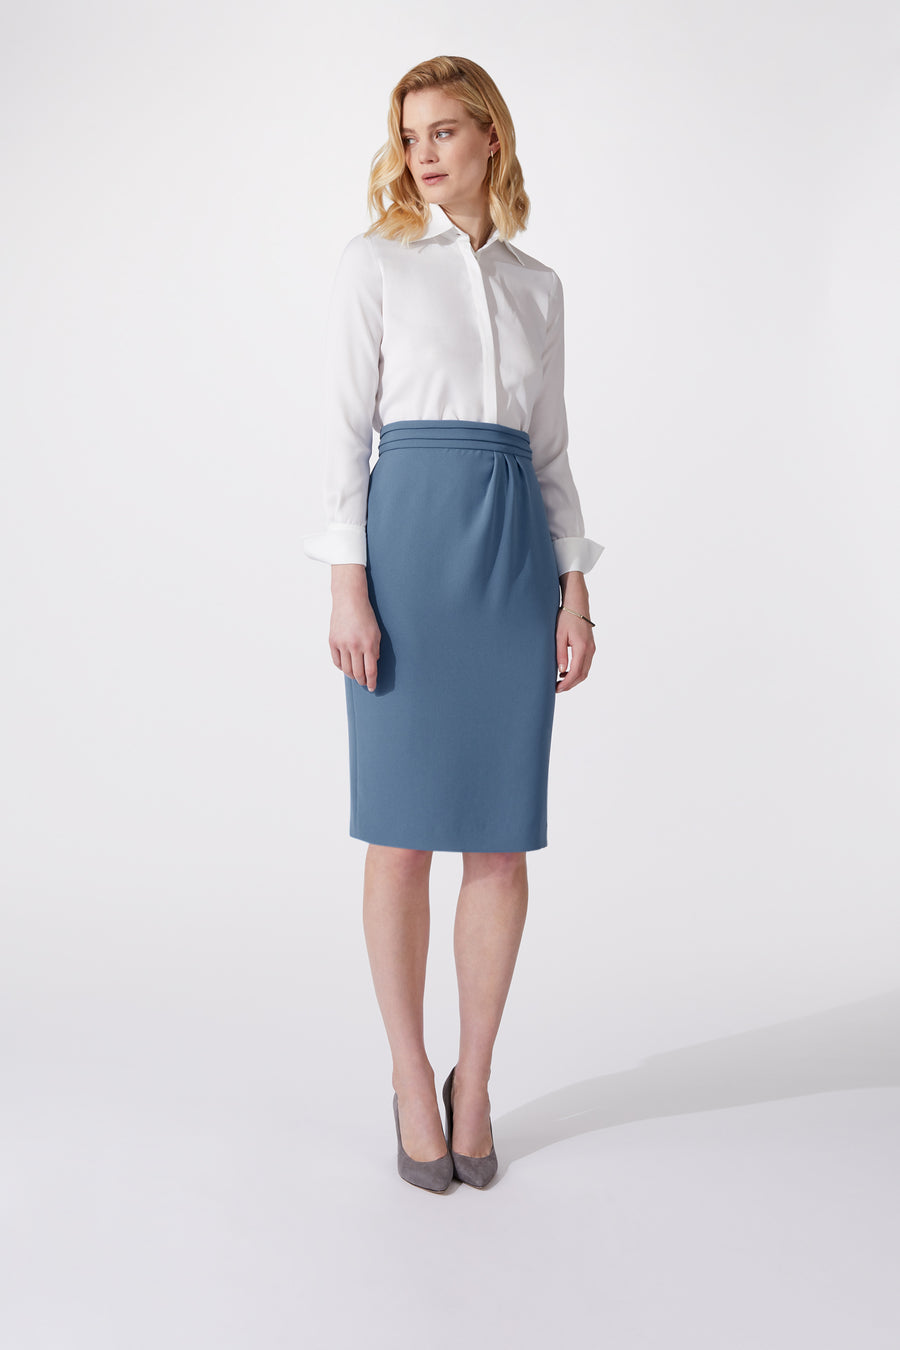 Edith Blush Skirt